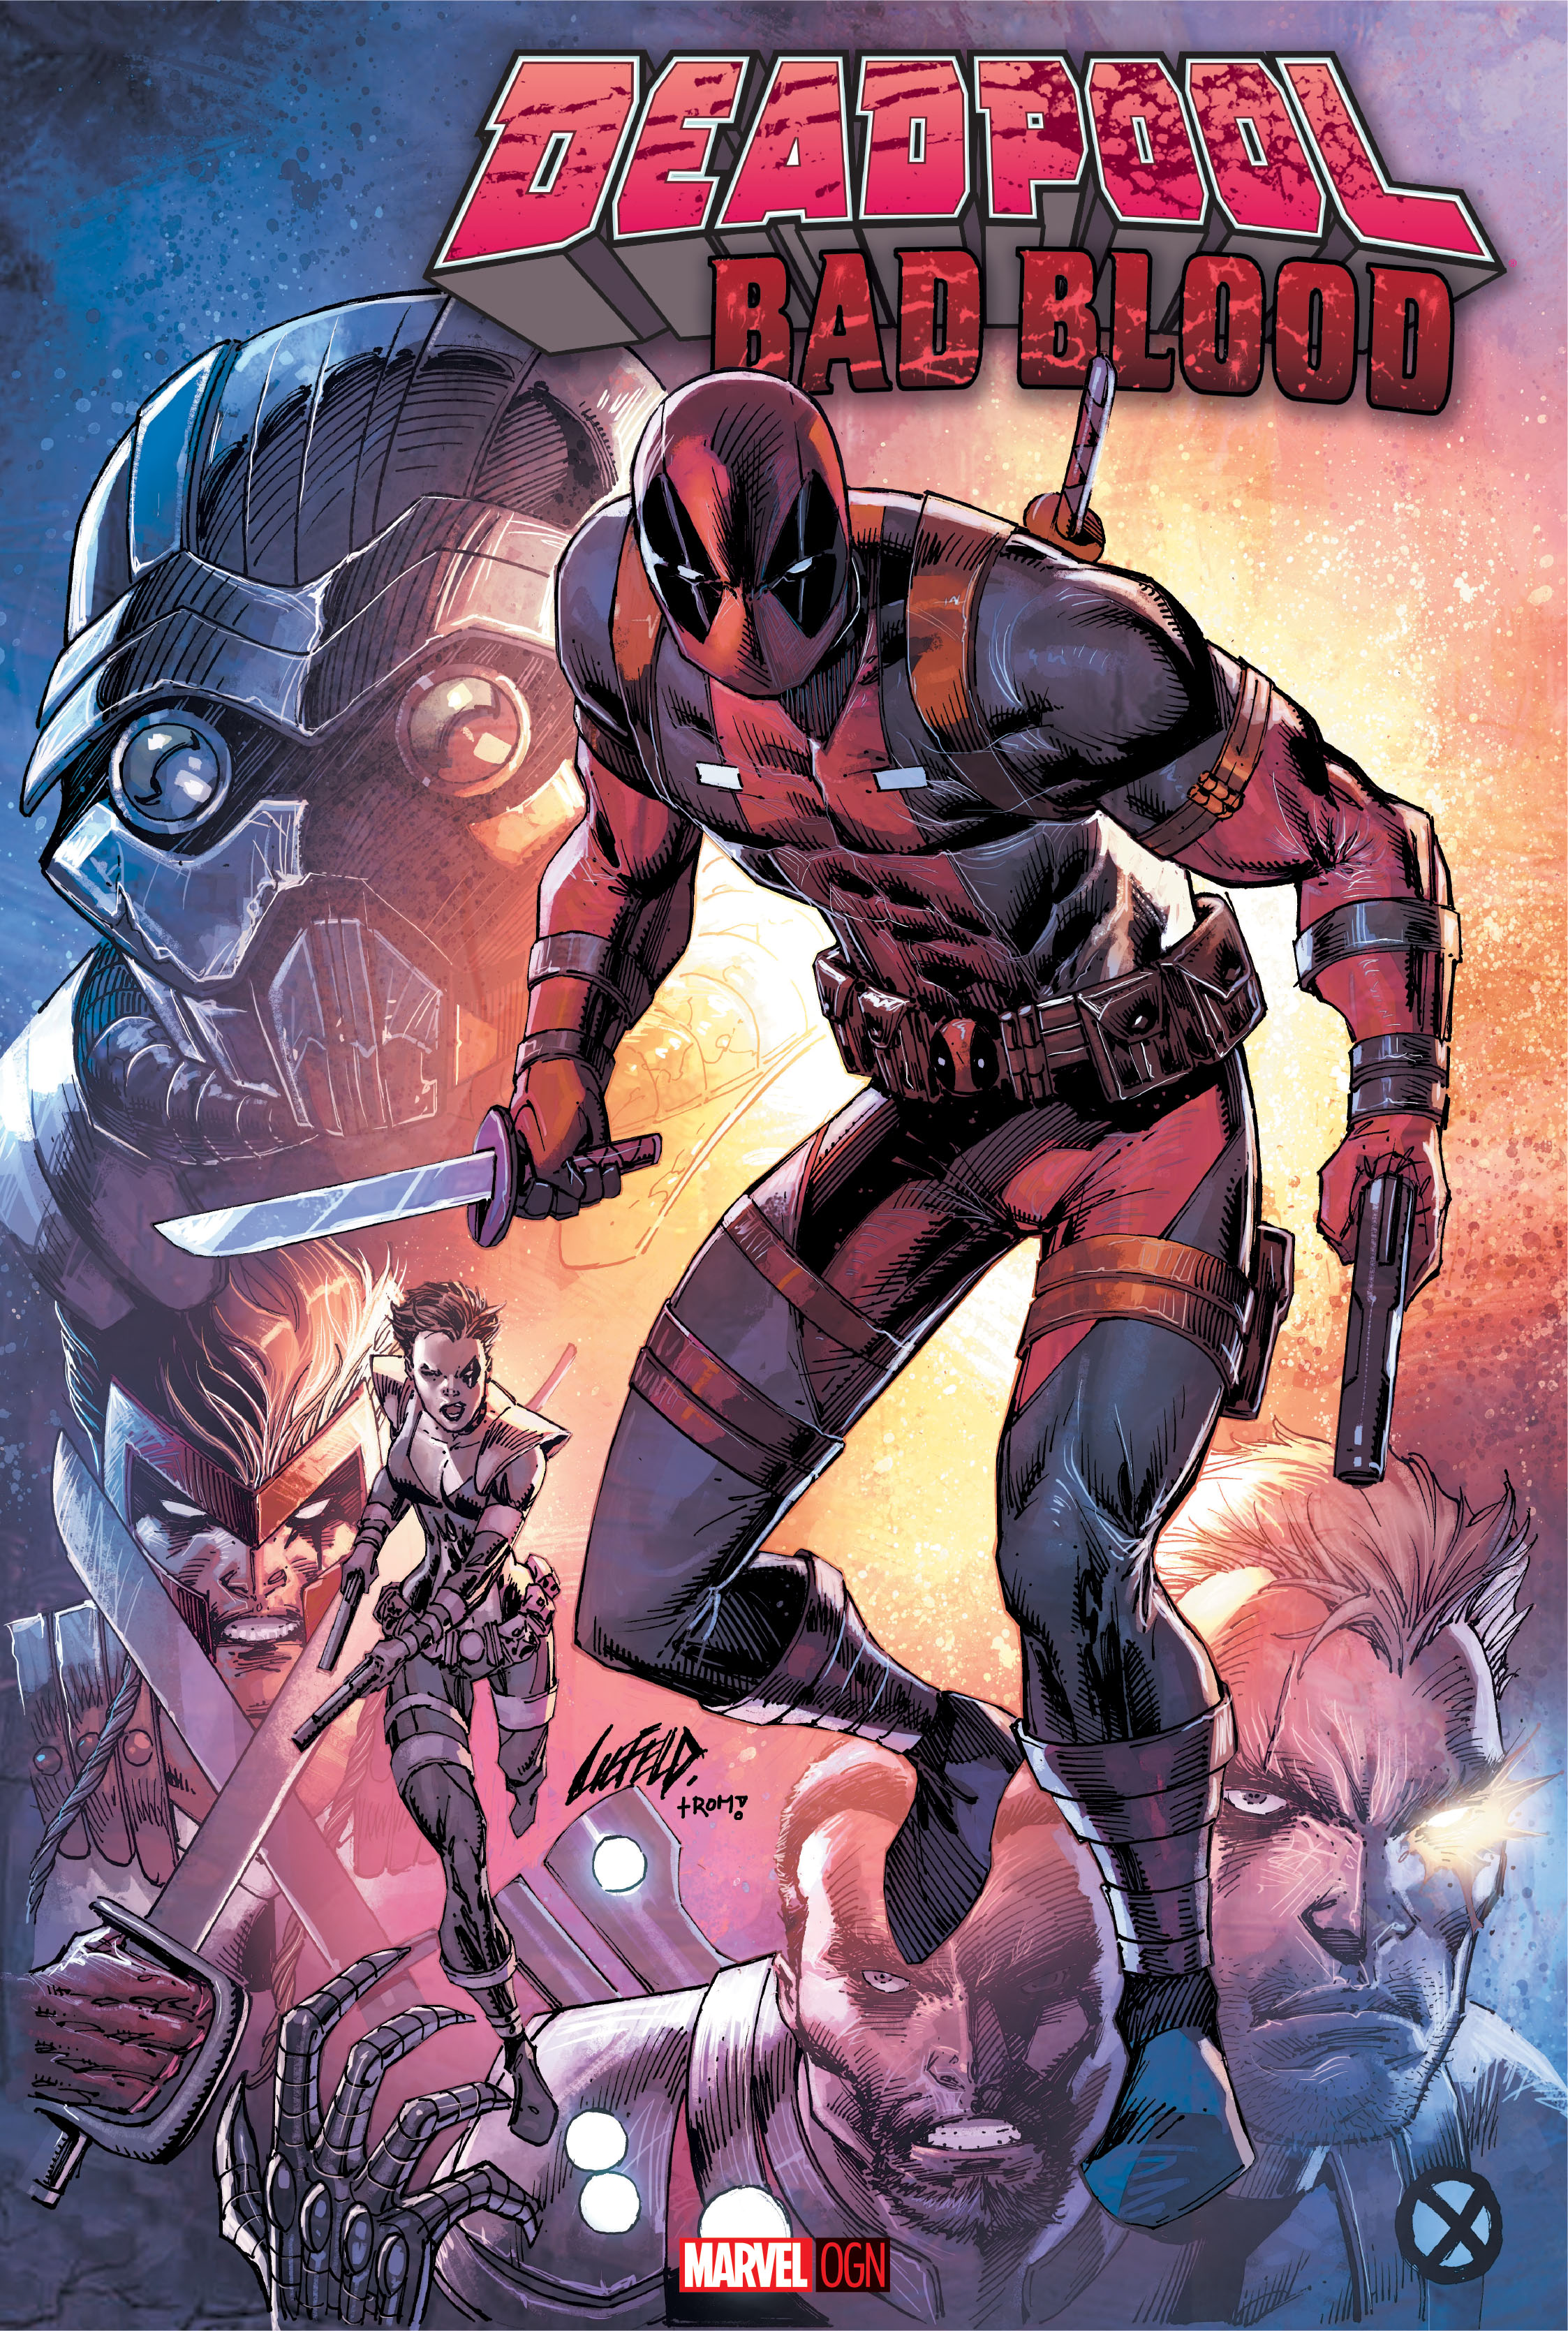 Deadpool Creator Rob Liefeld Returns to the Merc with a Mouth in 2016 for Marvel's Deadpool: Bad Blood OGN